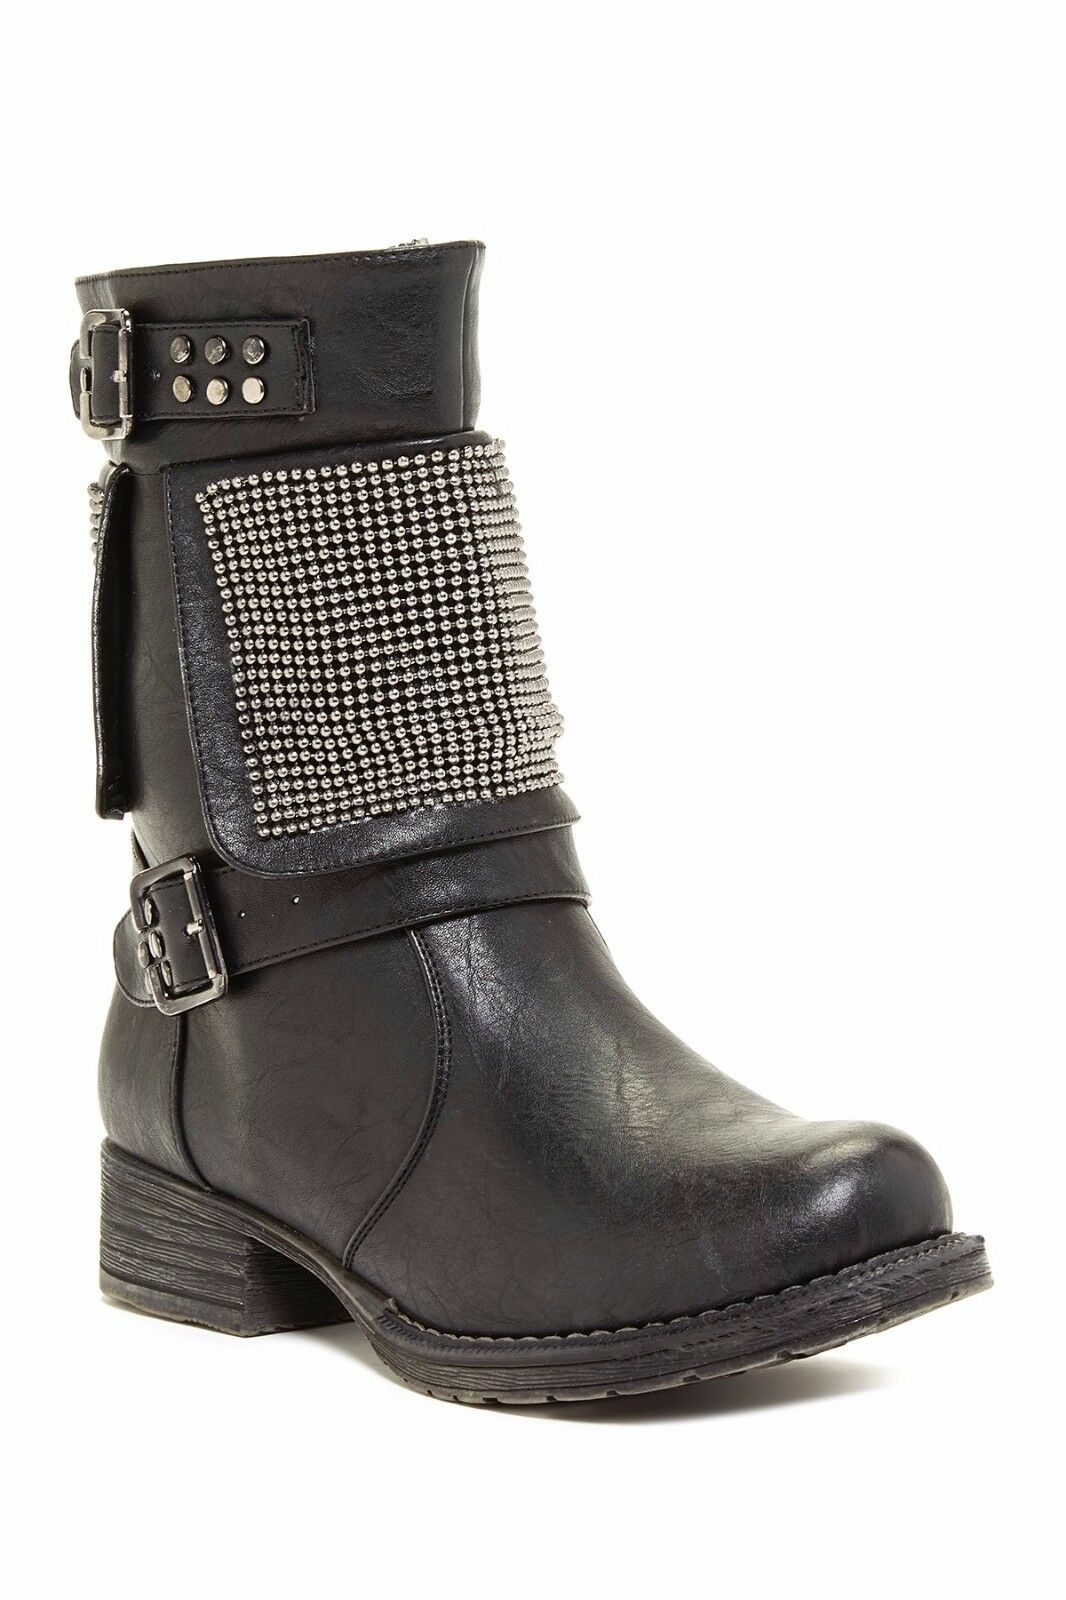 NEW EXTREME By Eddie Marc Taylor Combat BootS women's sz 6